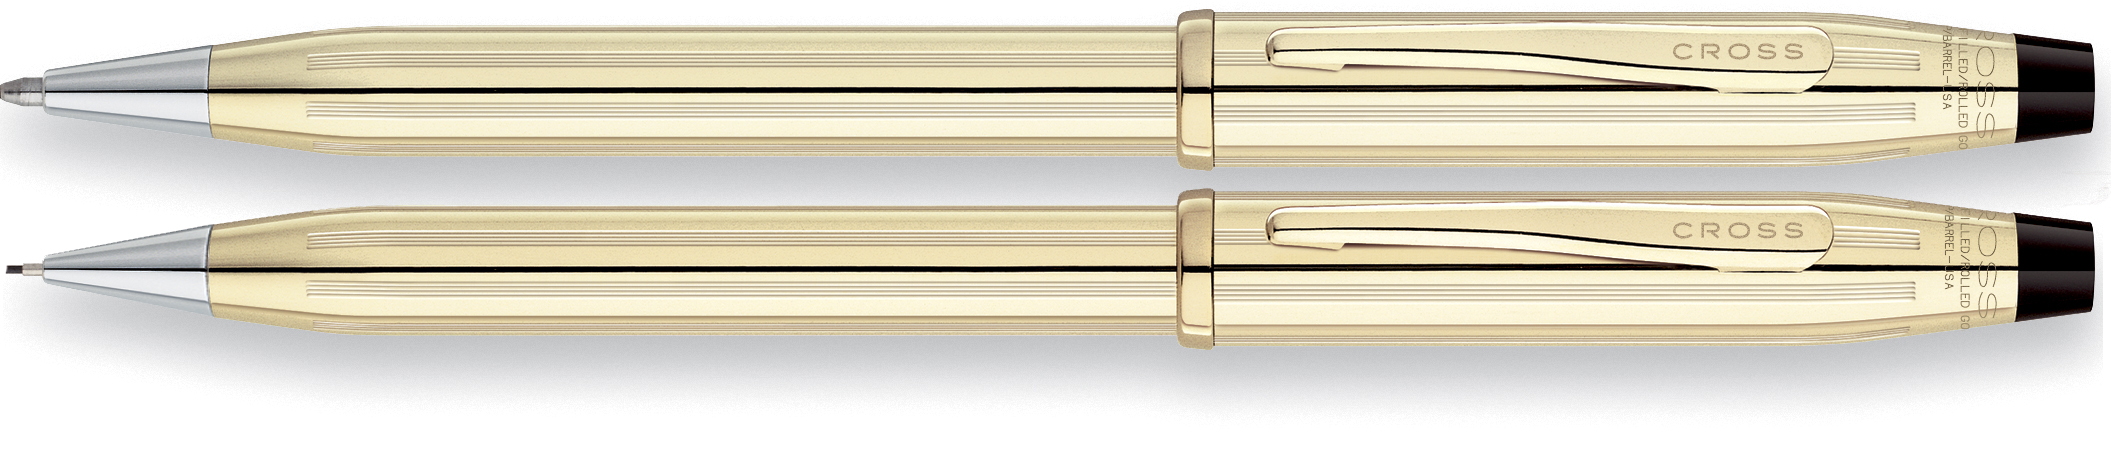 Cross Century II 10 Karat Gold  Pen & Pencil Set